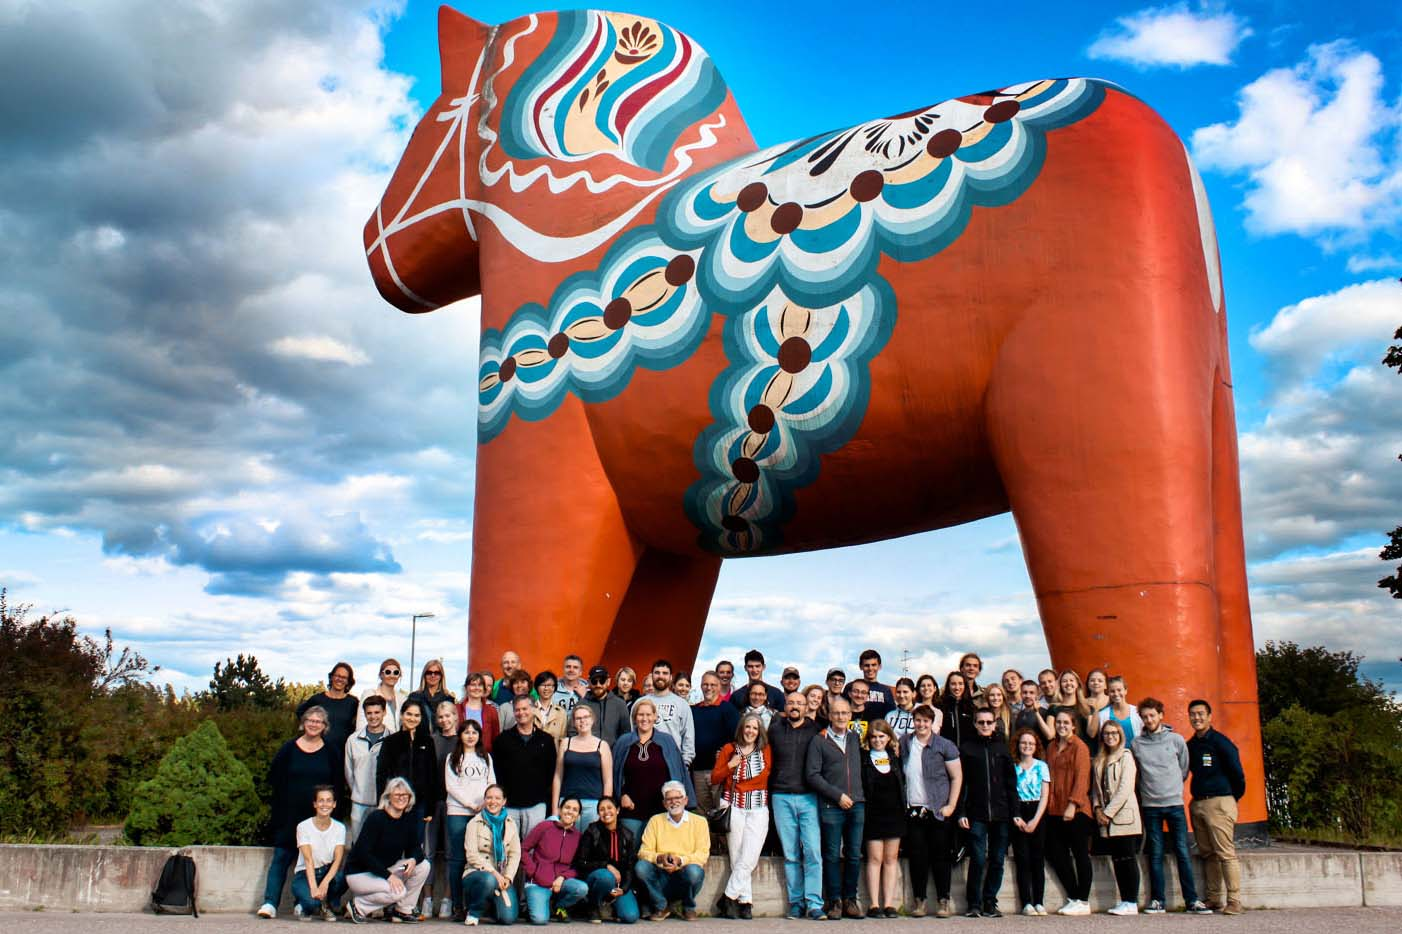 Friday Trip to Falun and Dalarna calls for a stop by the Dala Horse